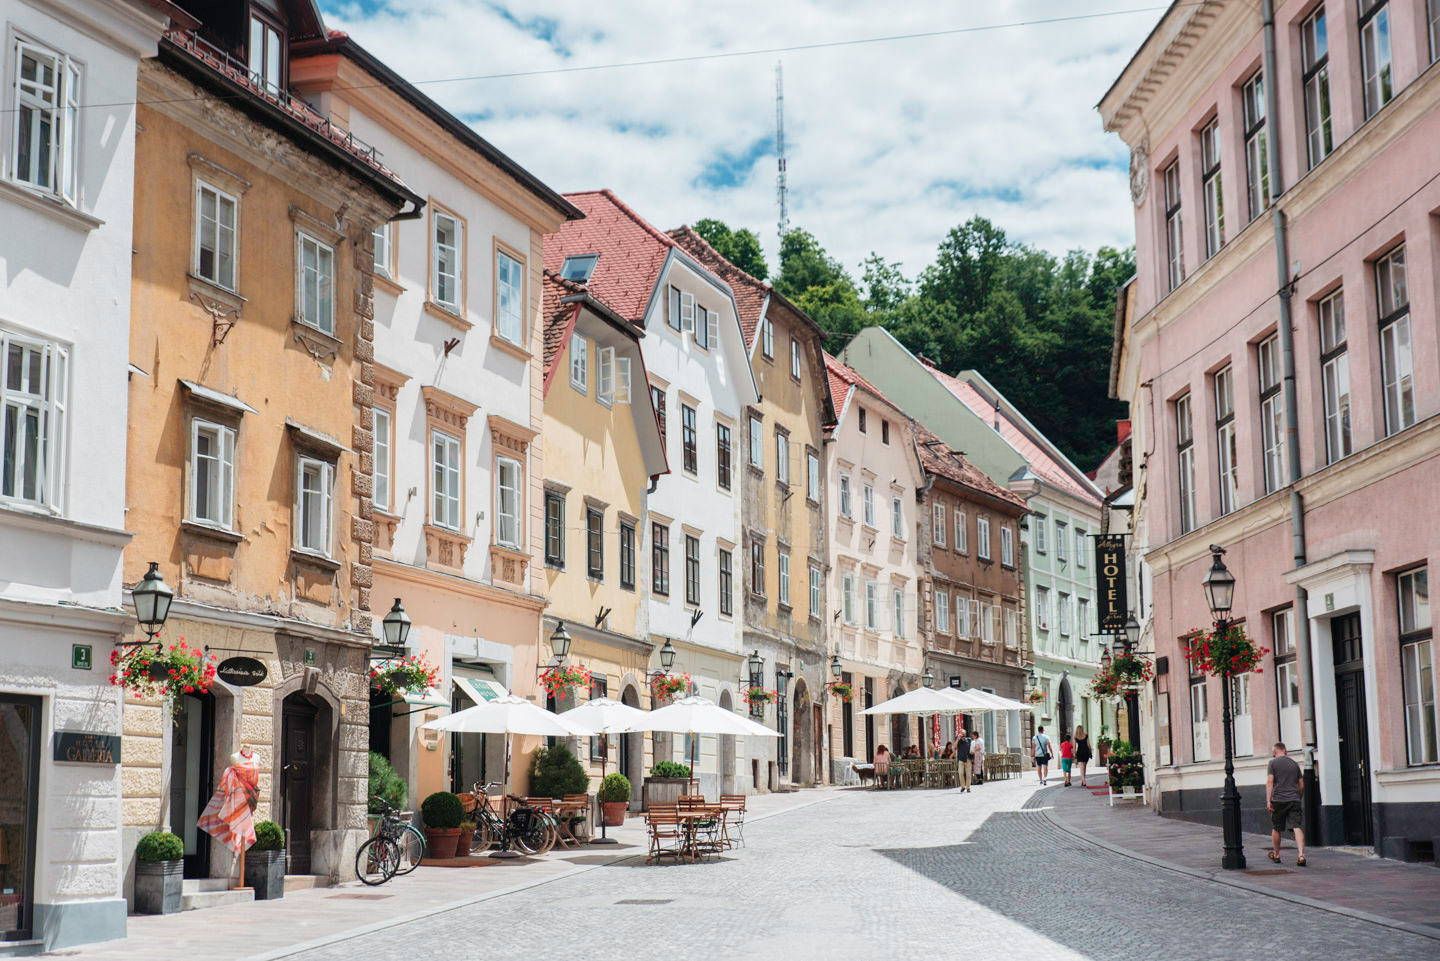 Blog-Mode-And-The-City-Lifestyle-Roadtrip-Europe-Slovenie-Ljubljana-Bled-3